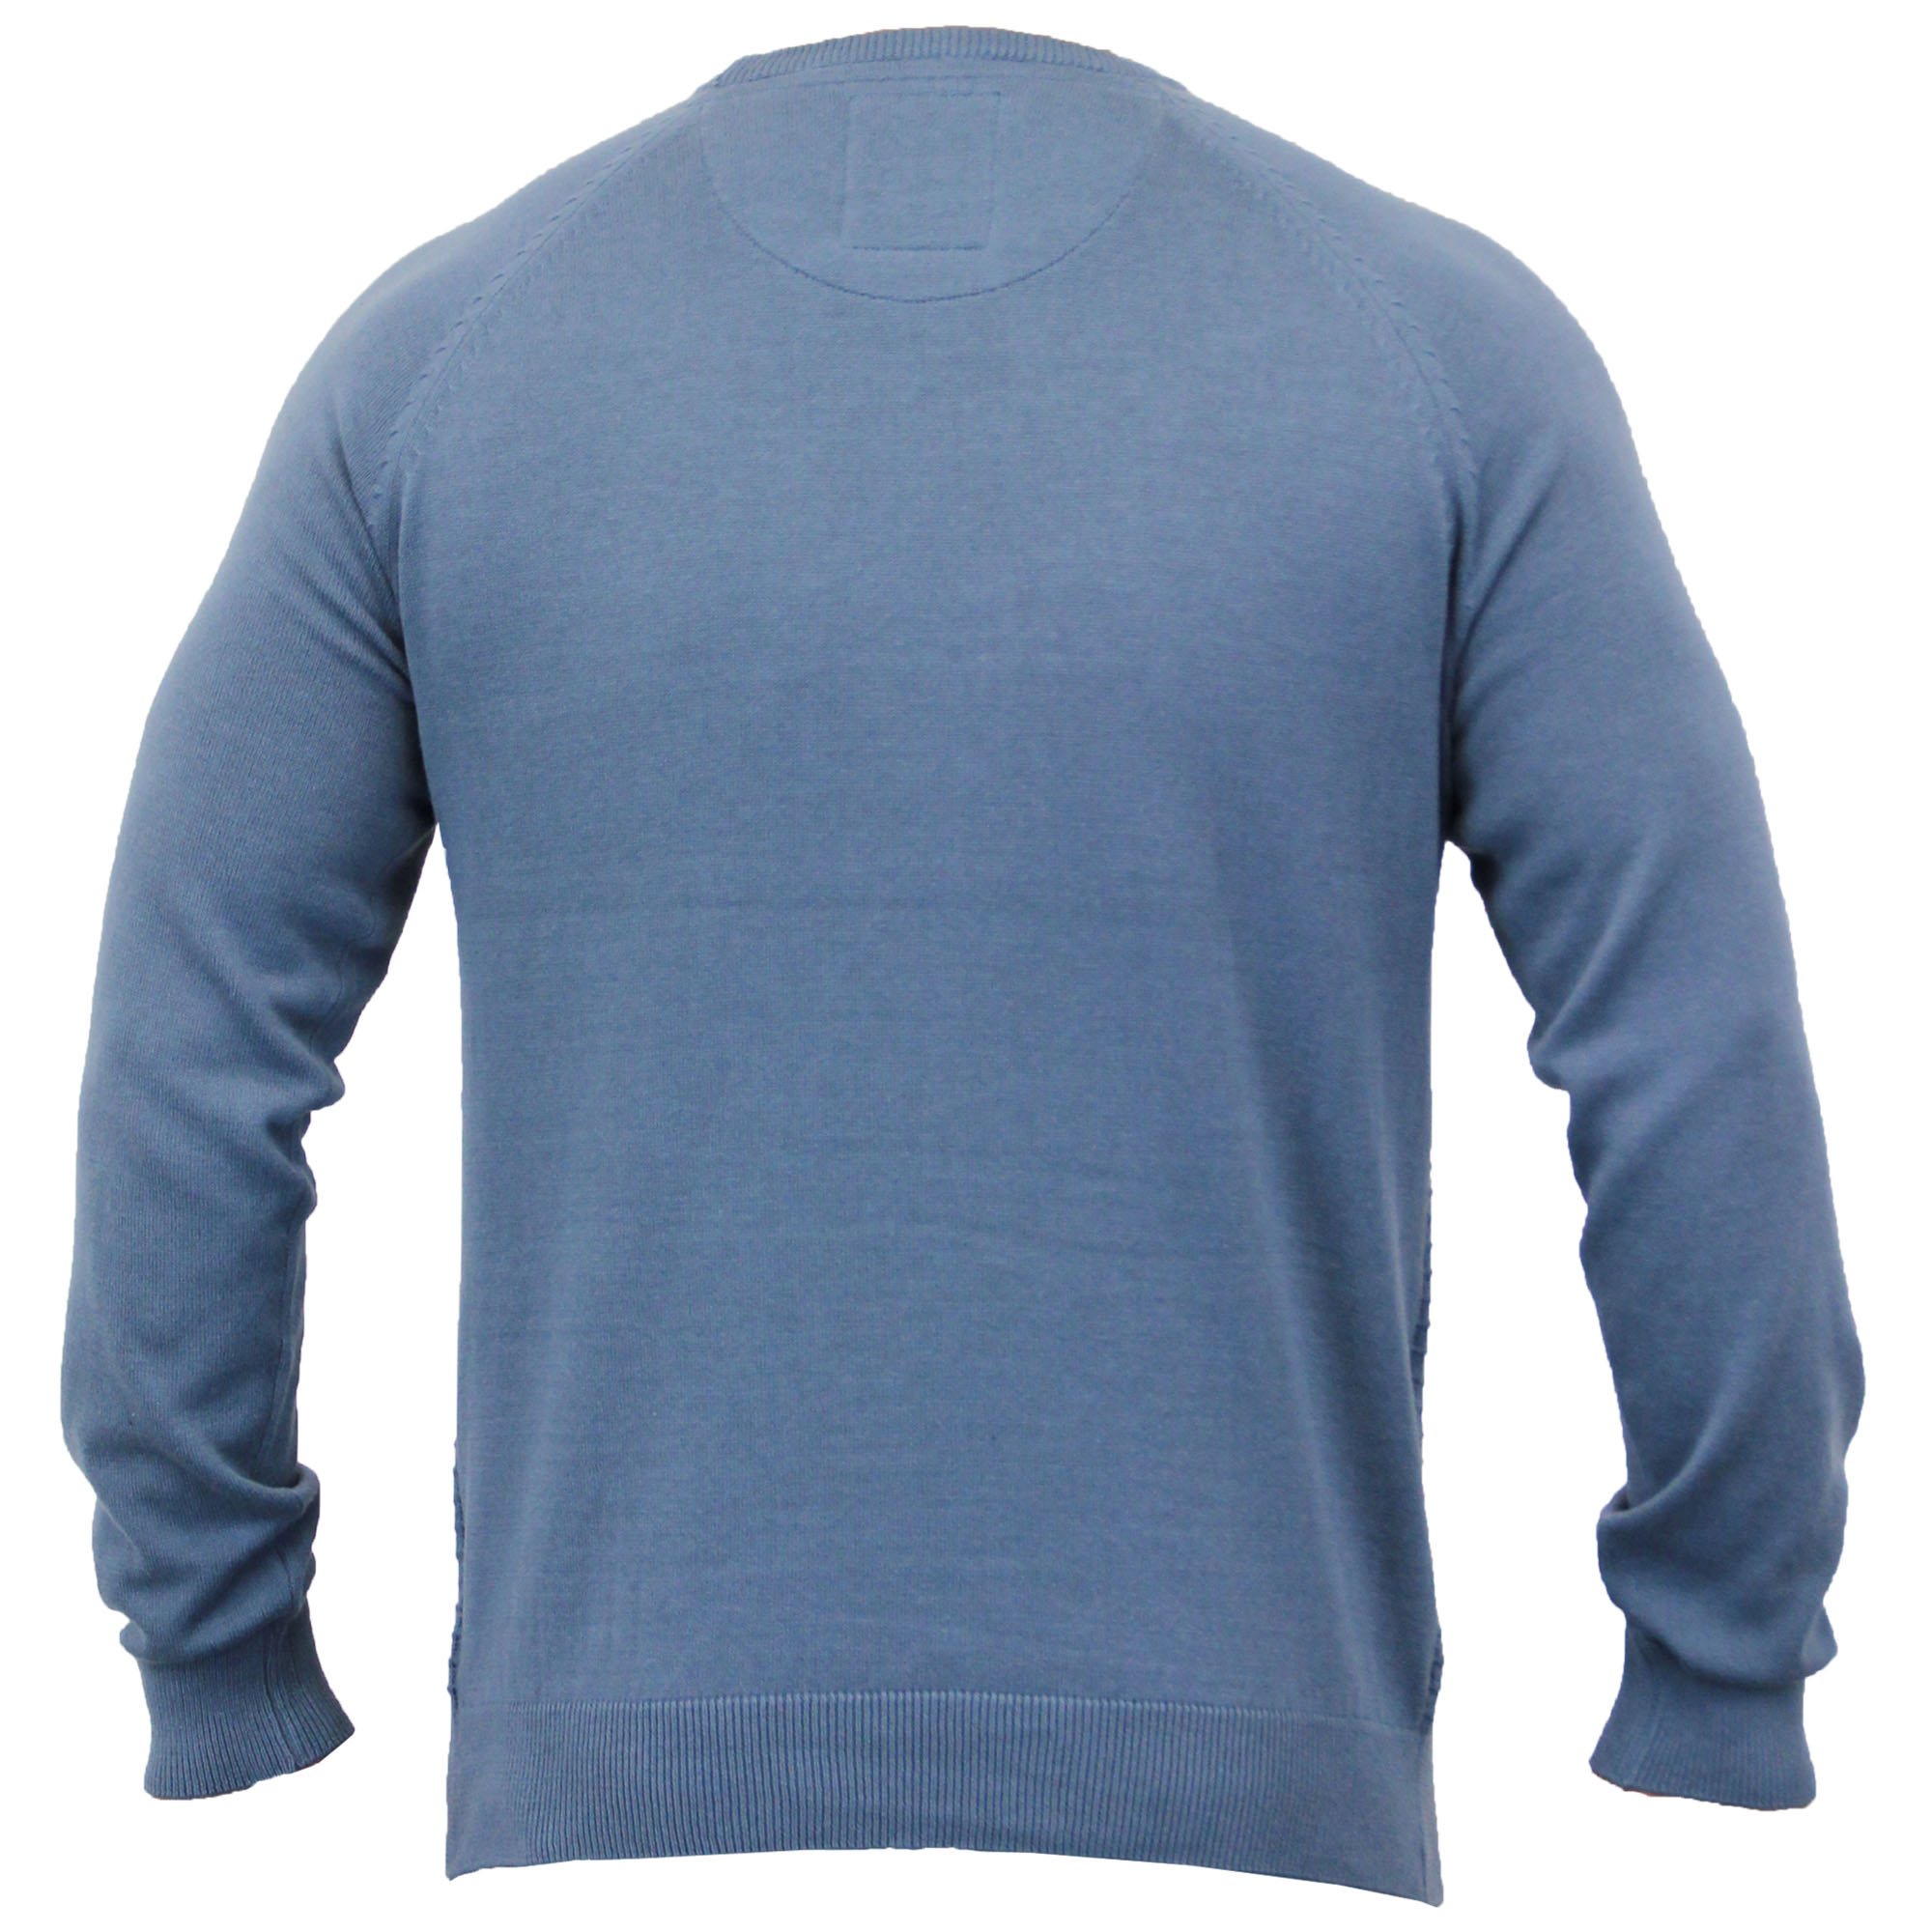 Mens-Jumper-Threadbare-Knitted-Chunky-Sweater-Top-Pullover-Crew-Neck-Winter-New thumbnail 4